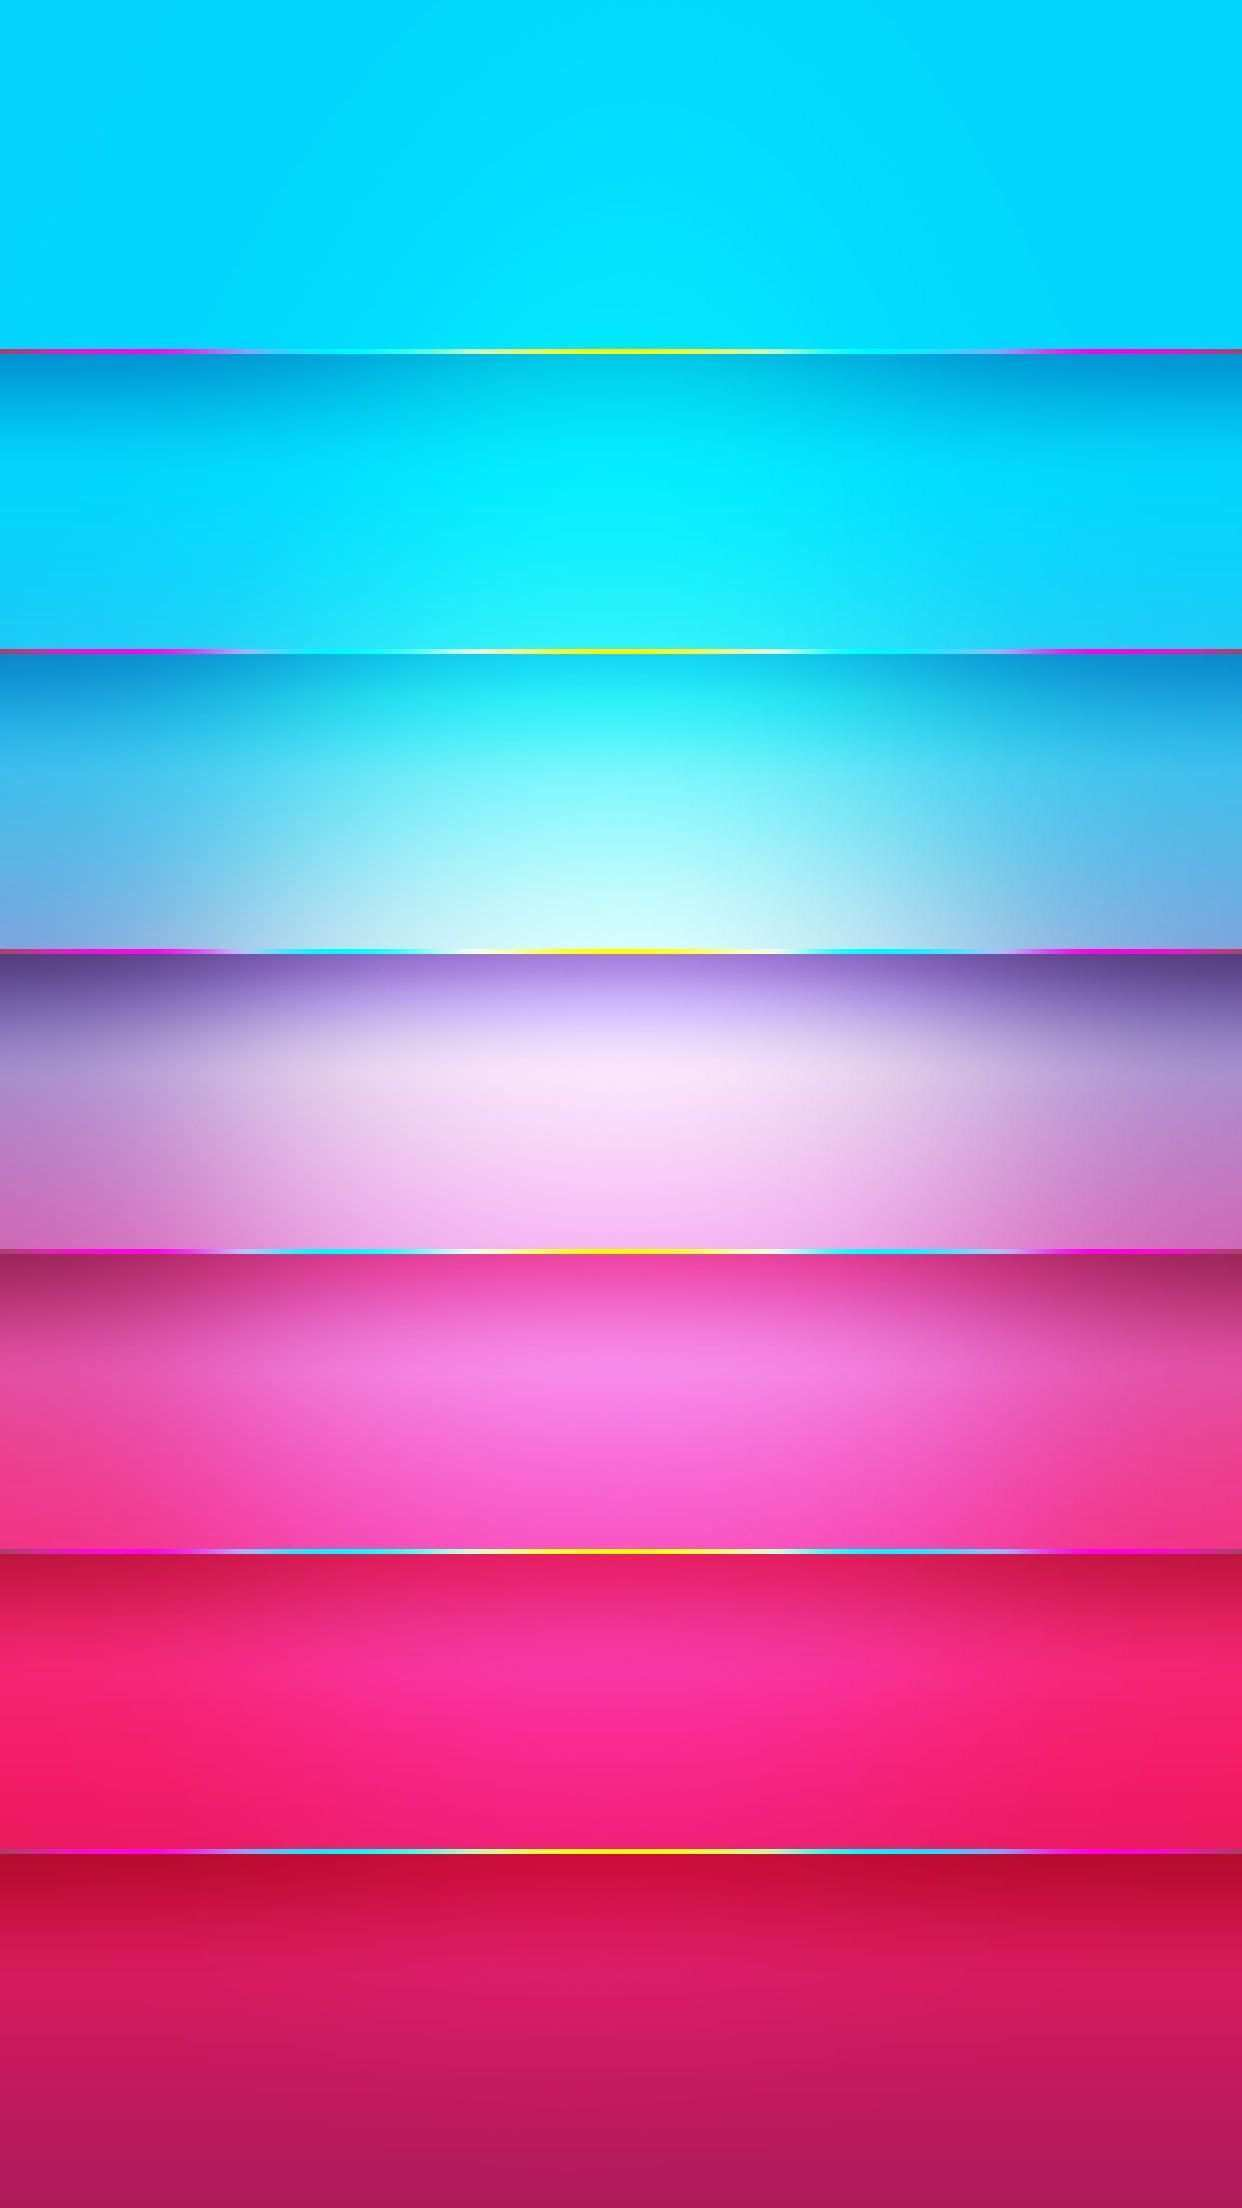 Tap And Get The Free App Shelves Stylish Blue Red Gradient Ombre Bright Hd Iphone 6 Plus Wallpape Iphone Wallpaper Wallpaper Shelves Iphone 6 Plus Wallpaper